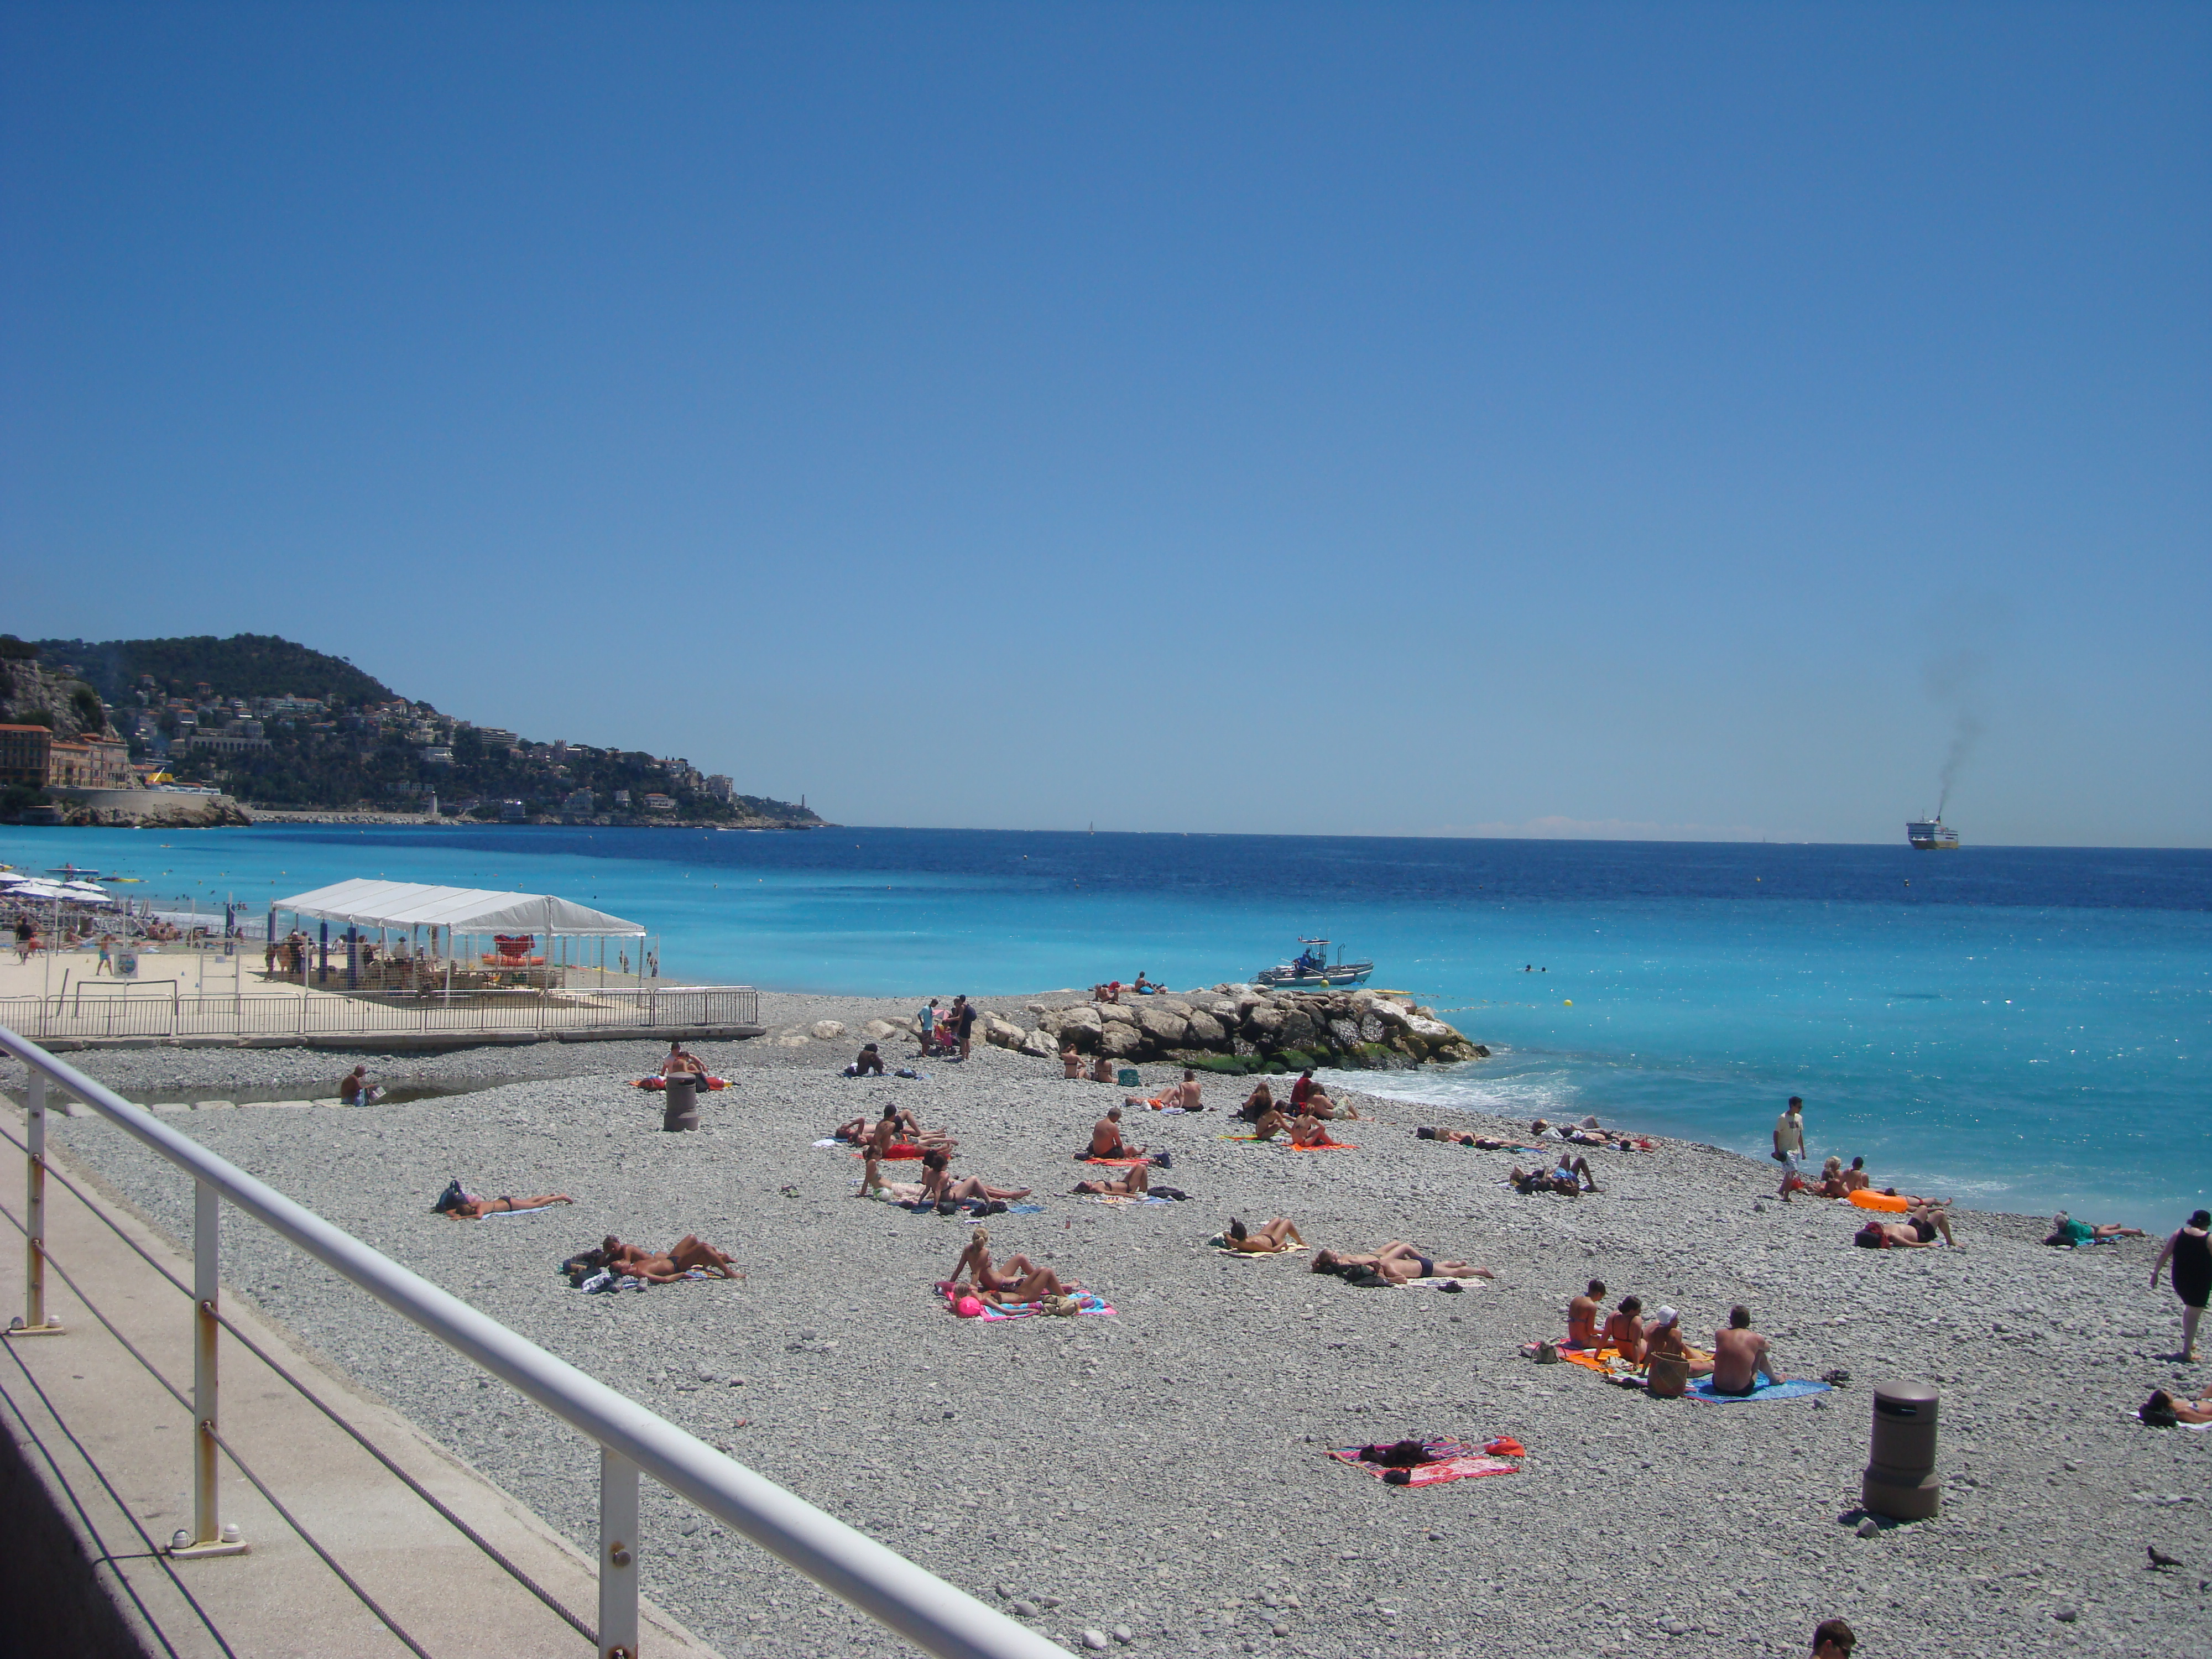 One of the many beautiful beaches of Nice, France